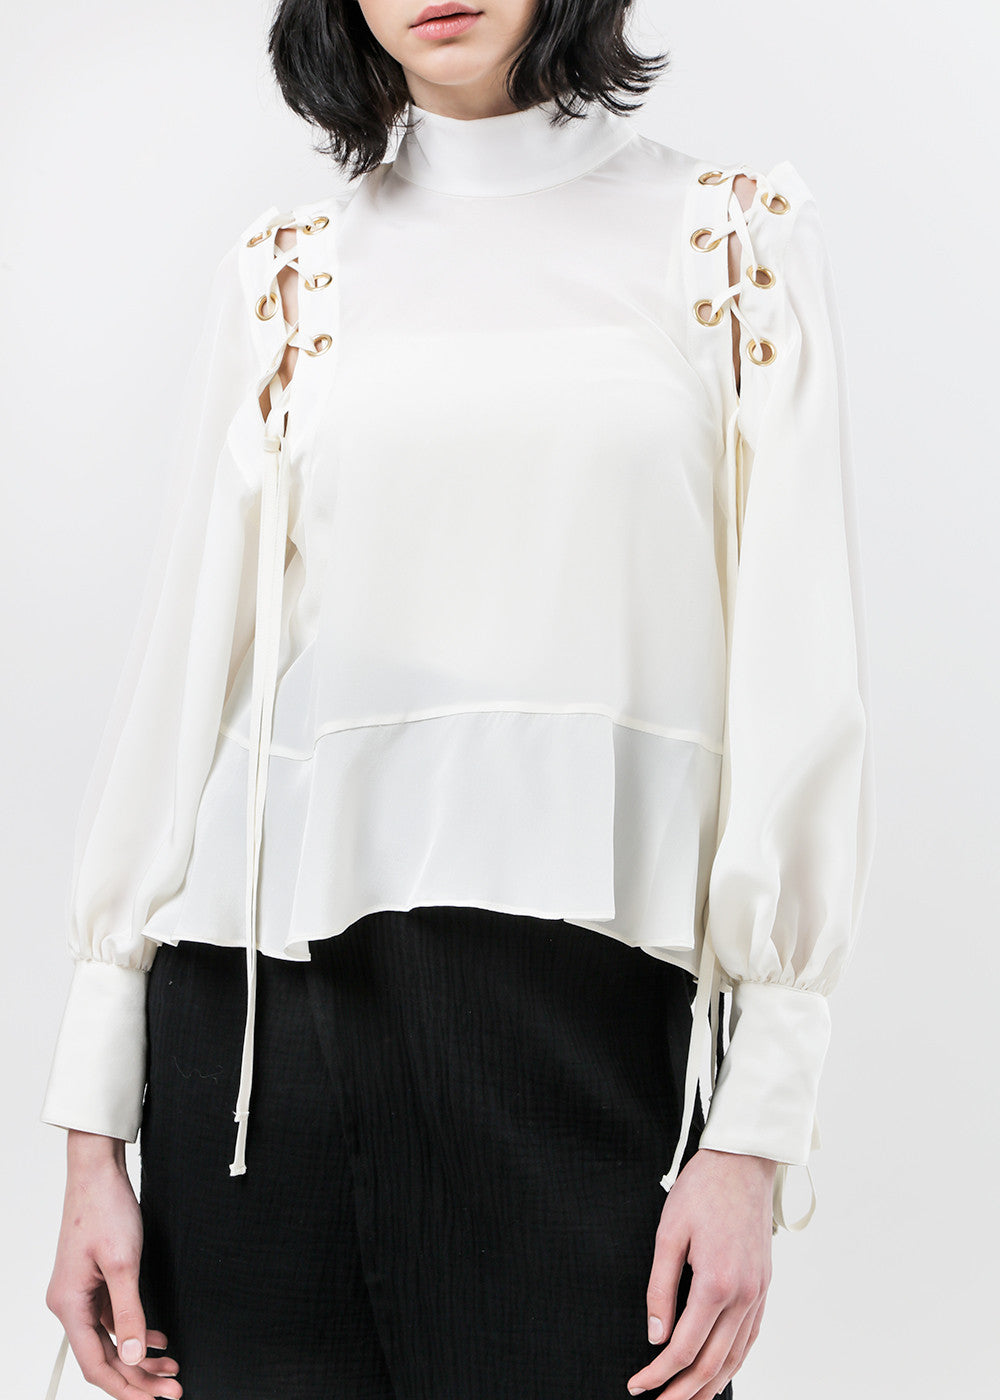 Arcana NYC Eyre Lace-Up Blouse — Shop sustainable fashion and slow fashion at New Classics Studios